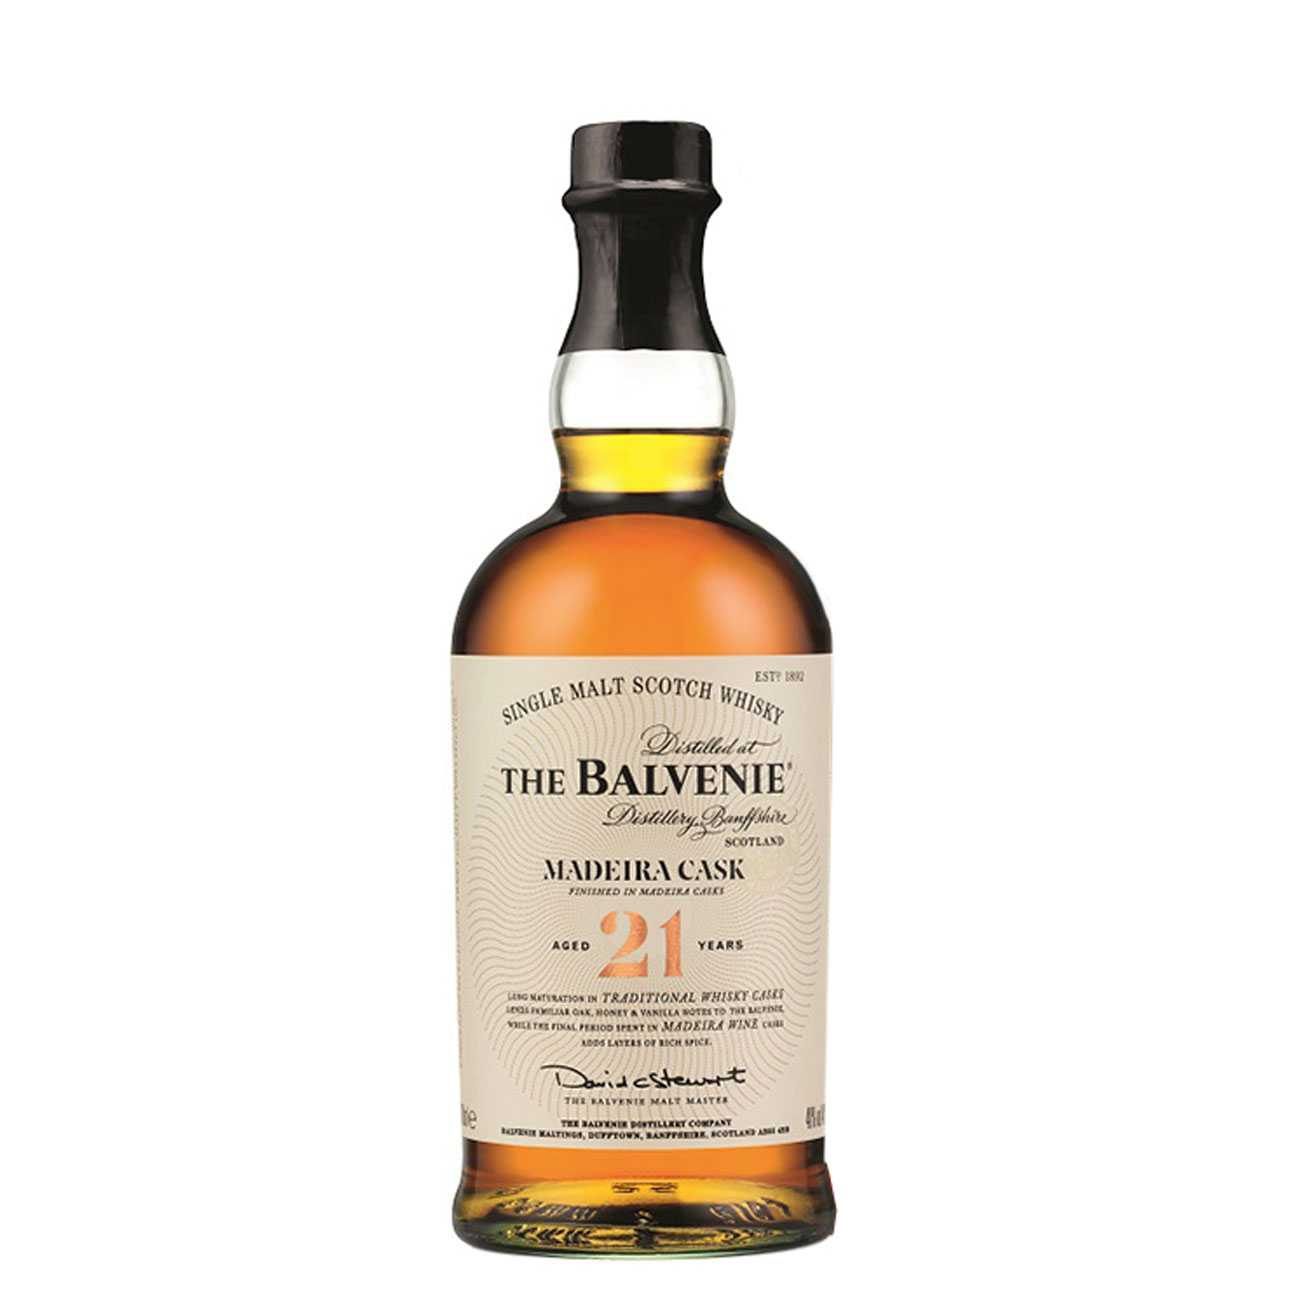 Whisky scotian, MADEIRA CASK 21YEARS 700 ML, The Balvenie